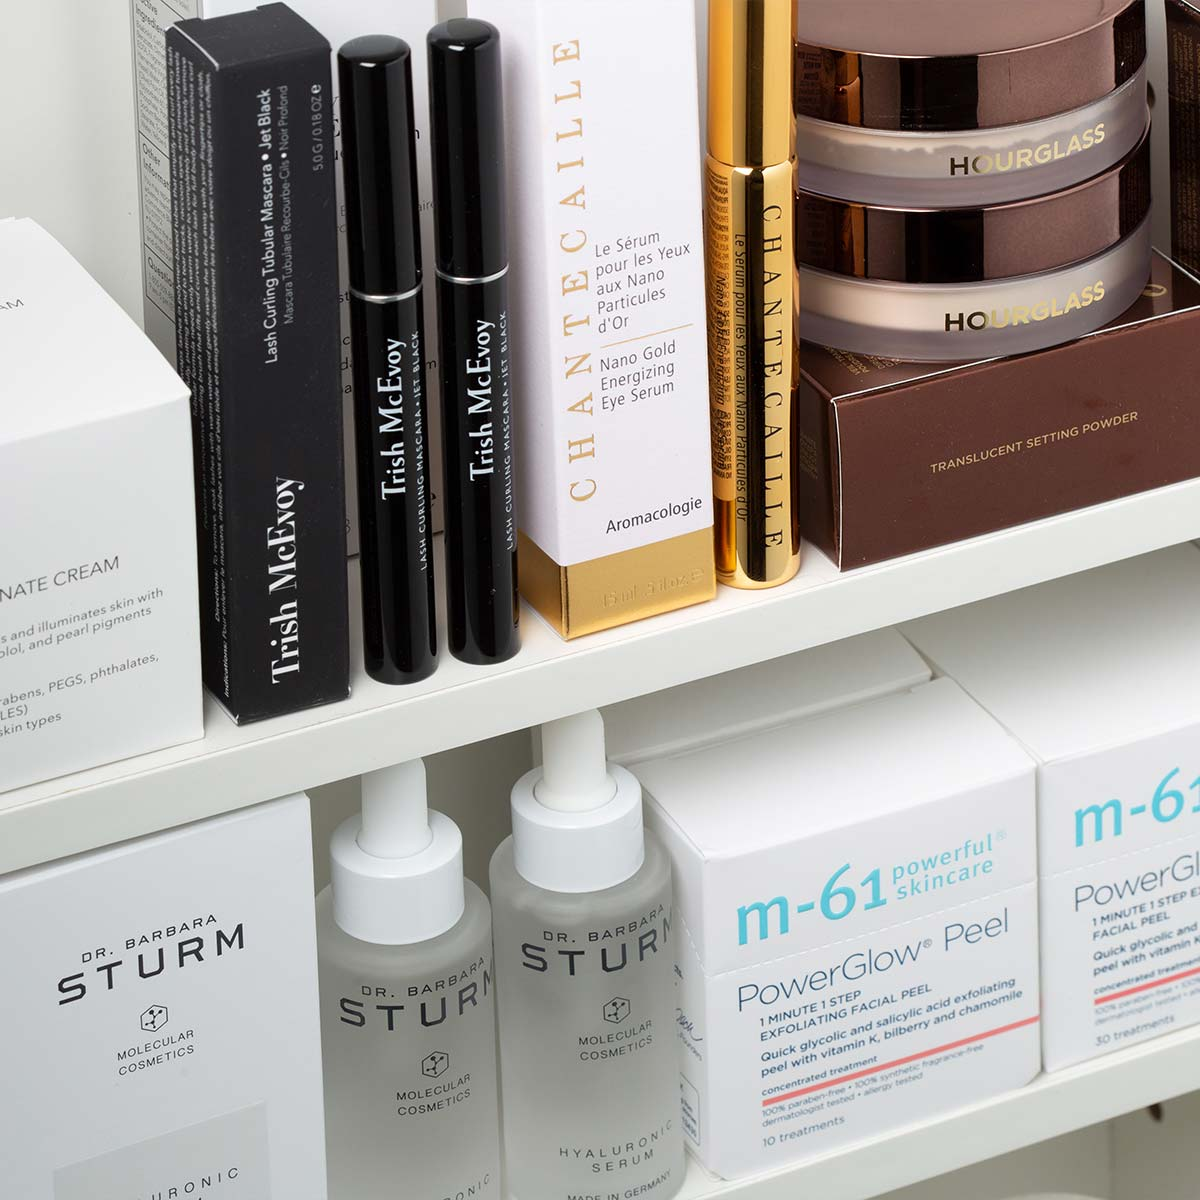 The products from Skincare Routine by Skin Type on a shelf